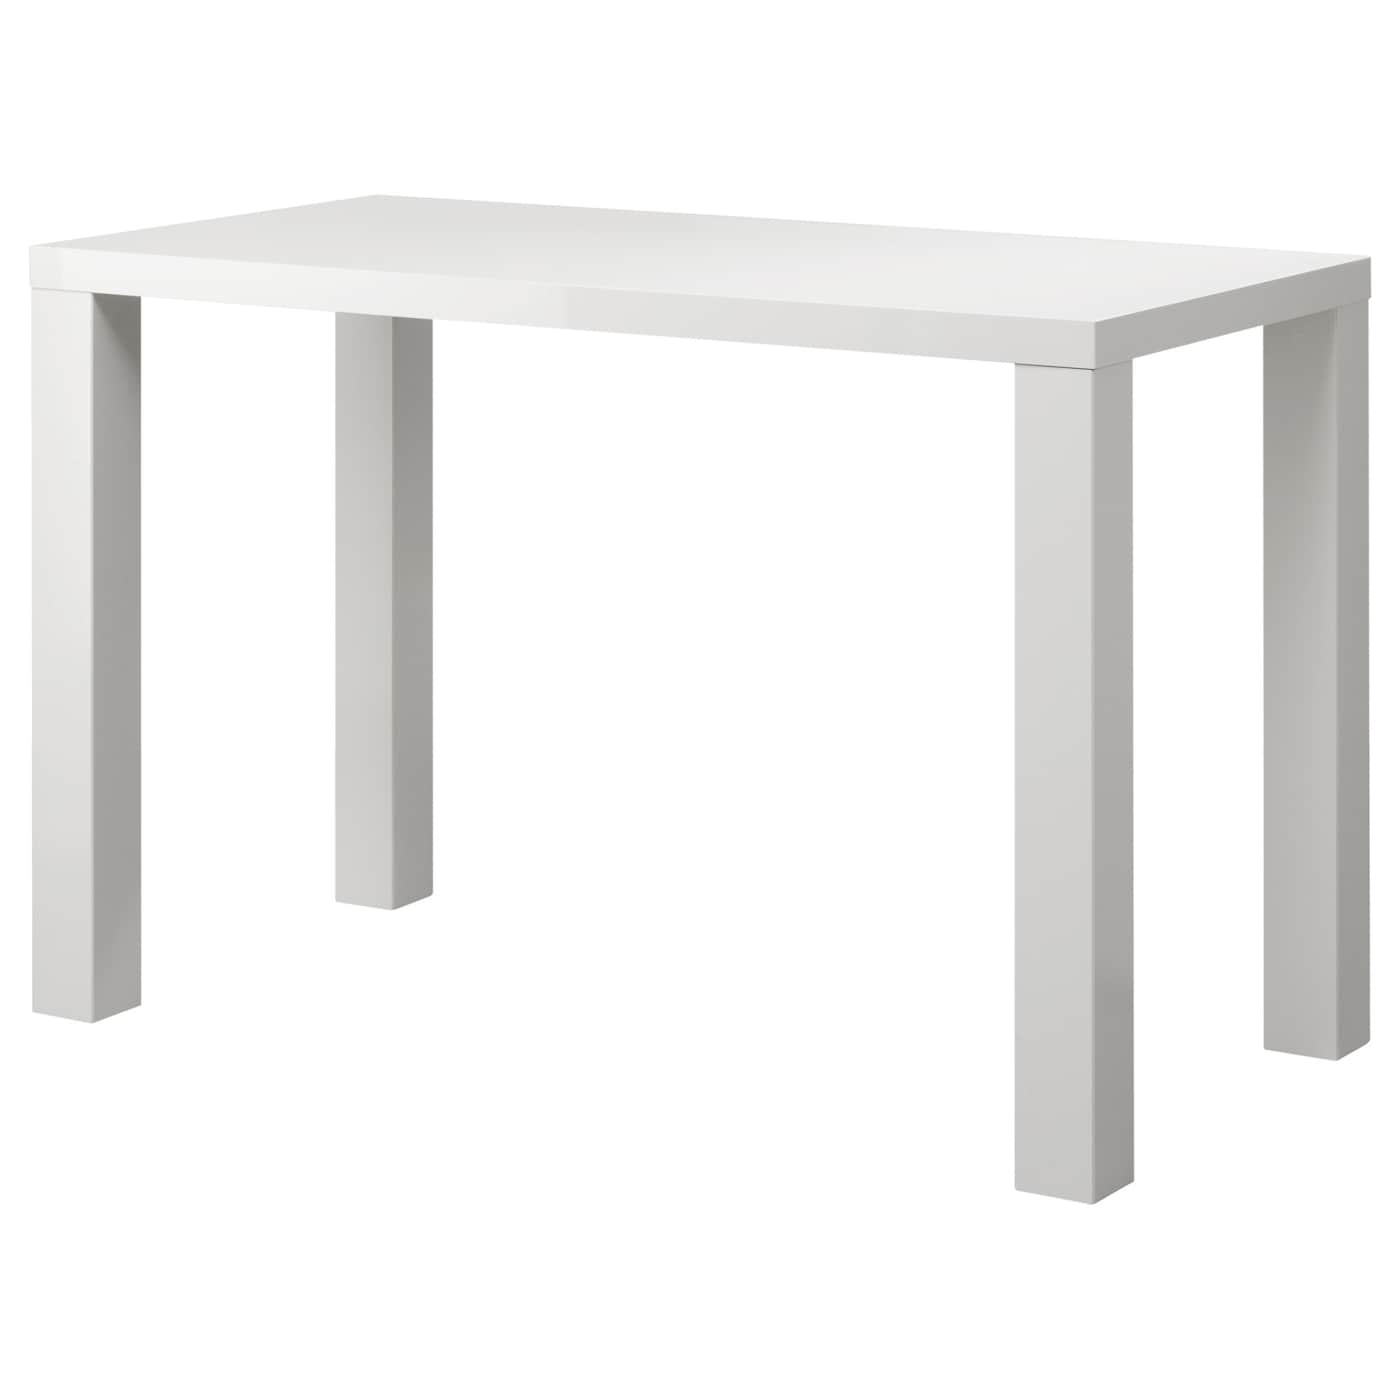 toresund bar table white high gloss 70x140 cm ikea. Black Bedroom Furniture Sets. Home Design Ideas